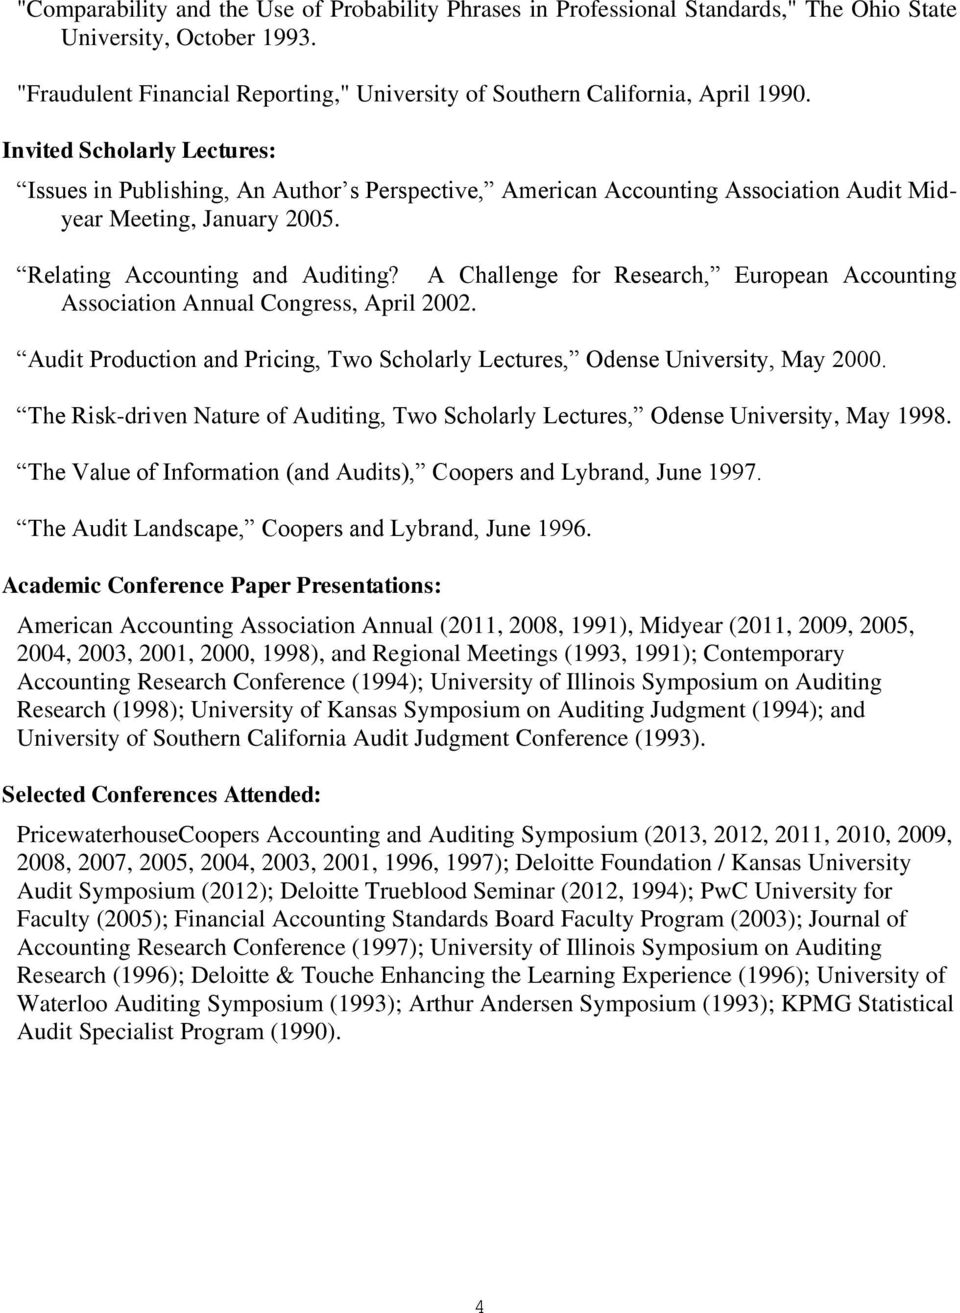 A Challenge for Research, European Accounting Association Annual Congress, April 2002. Audit Production and Pricing, Two Scholarly Lectures, Odense University, May 2000.